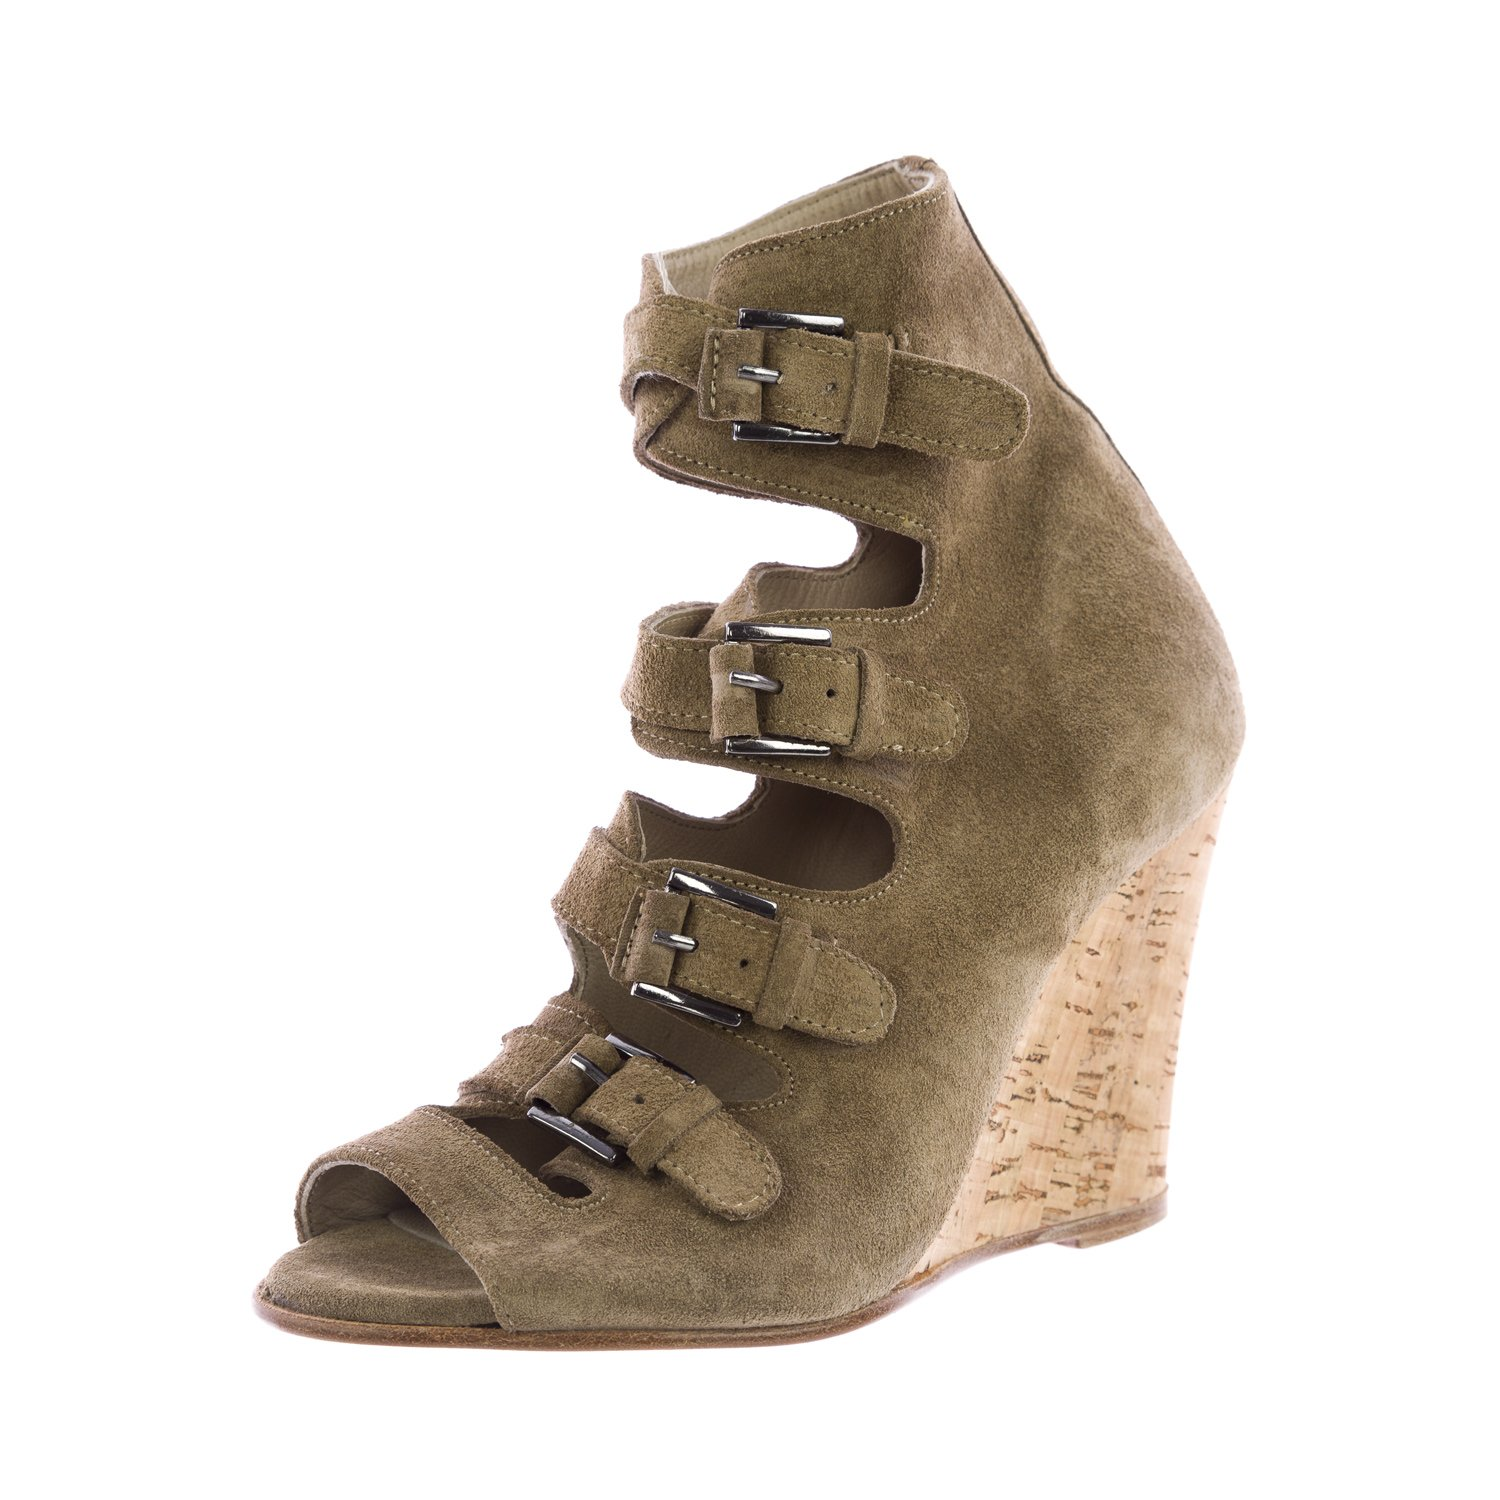 Surface to Air Women's Buckle Liege Suede Wedge Sandal B01FWOKCSS 4.5 M US|Taupe